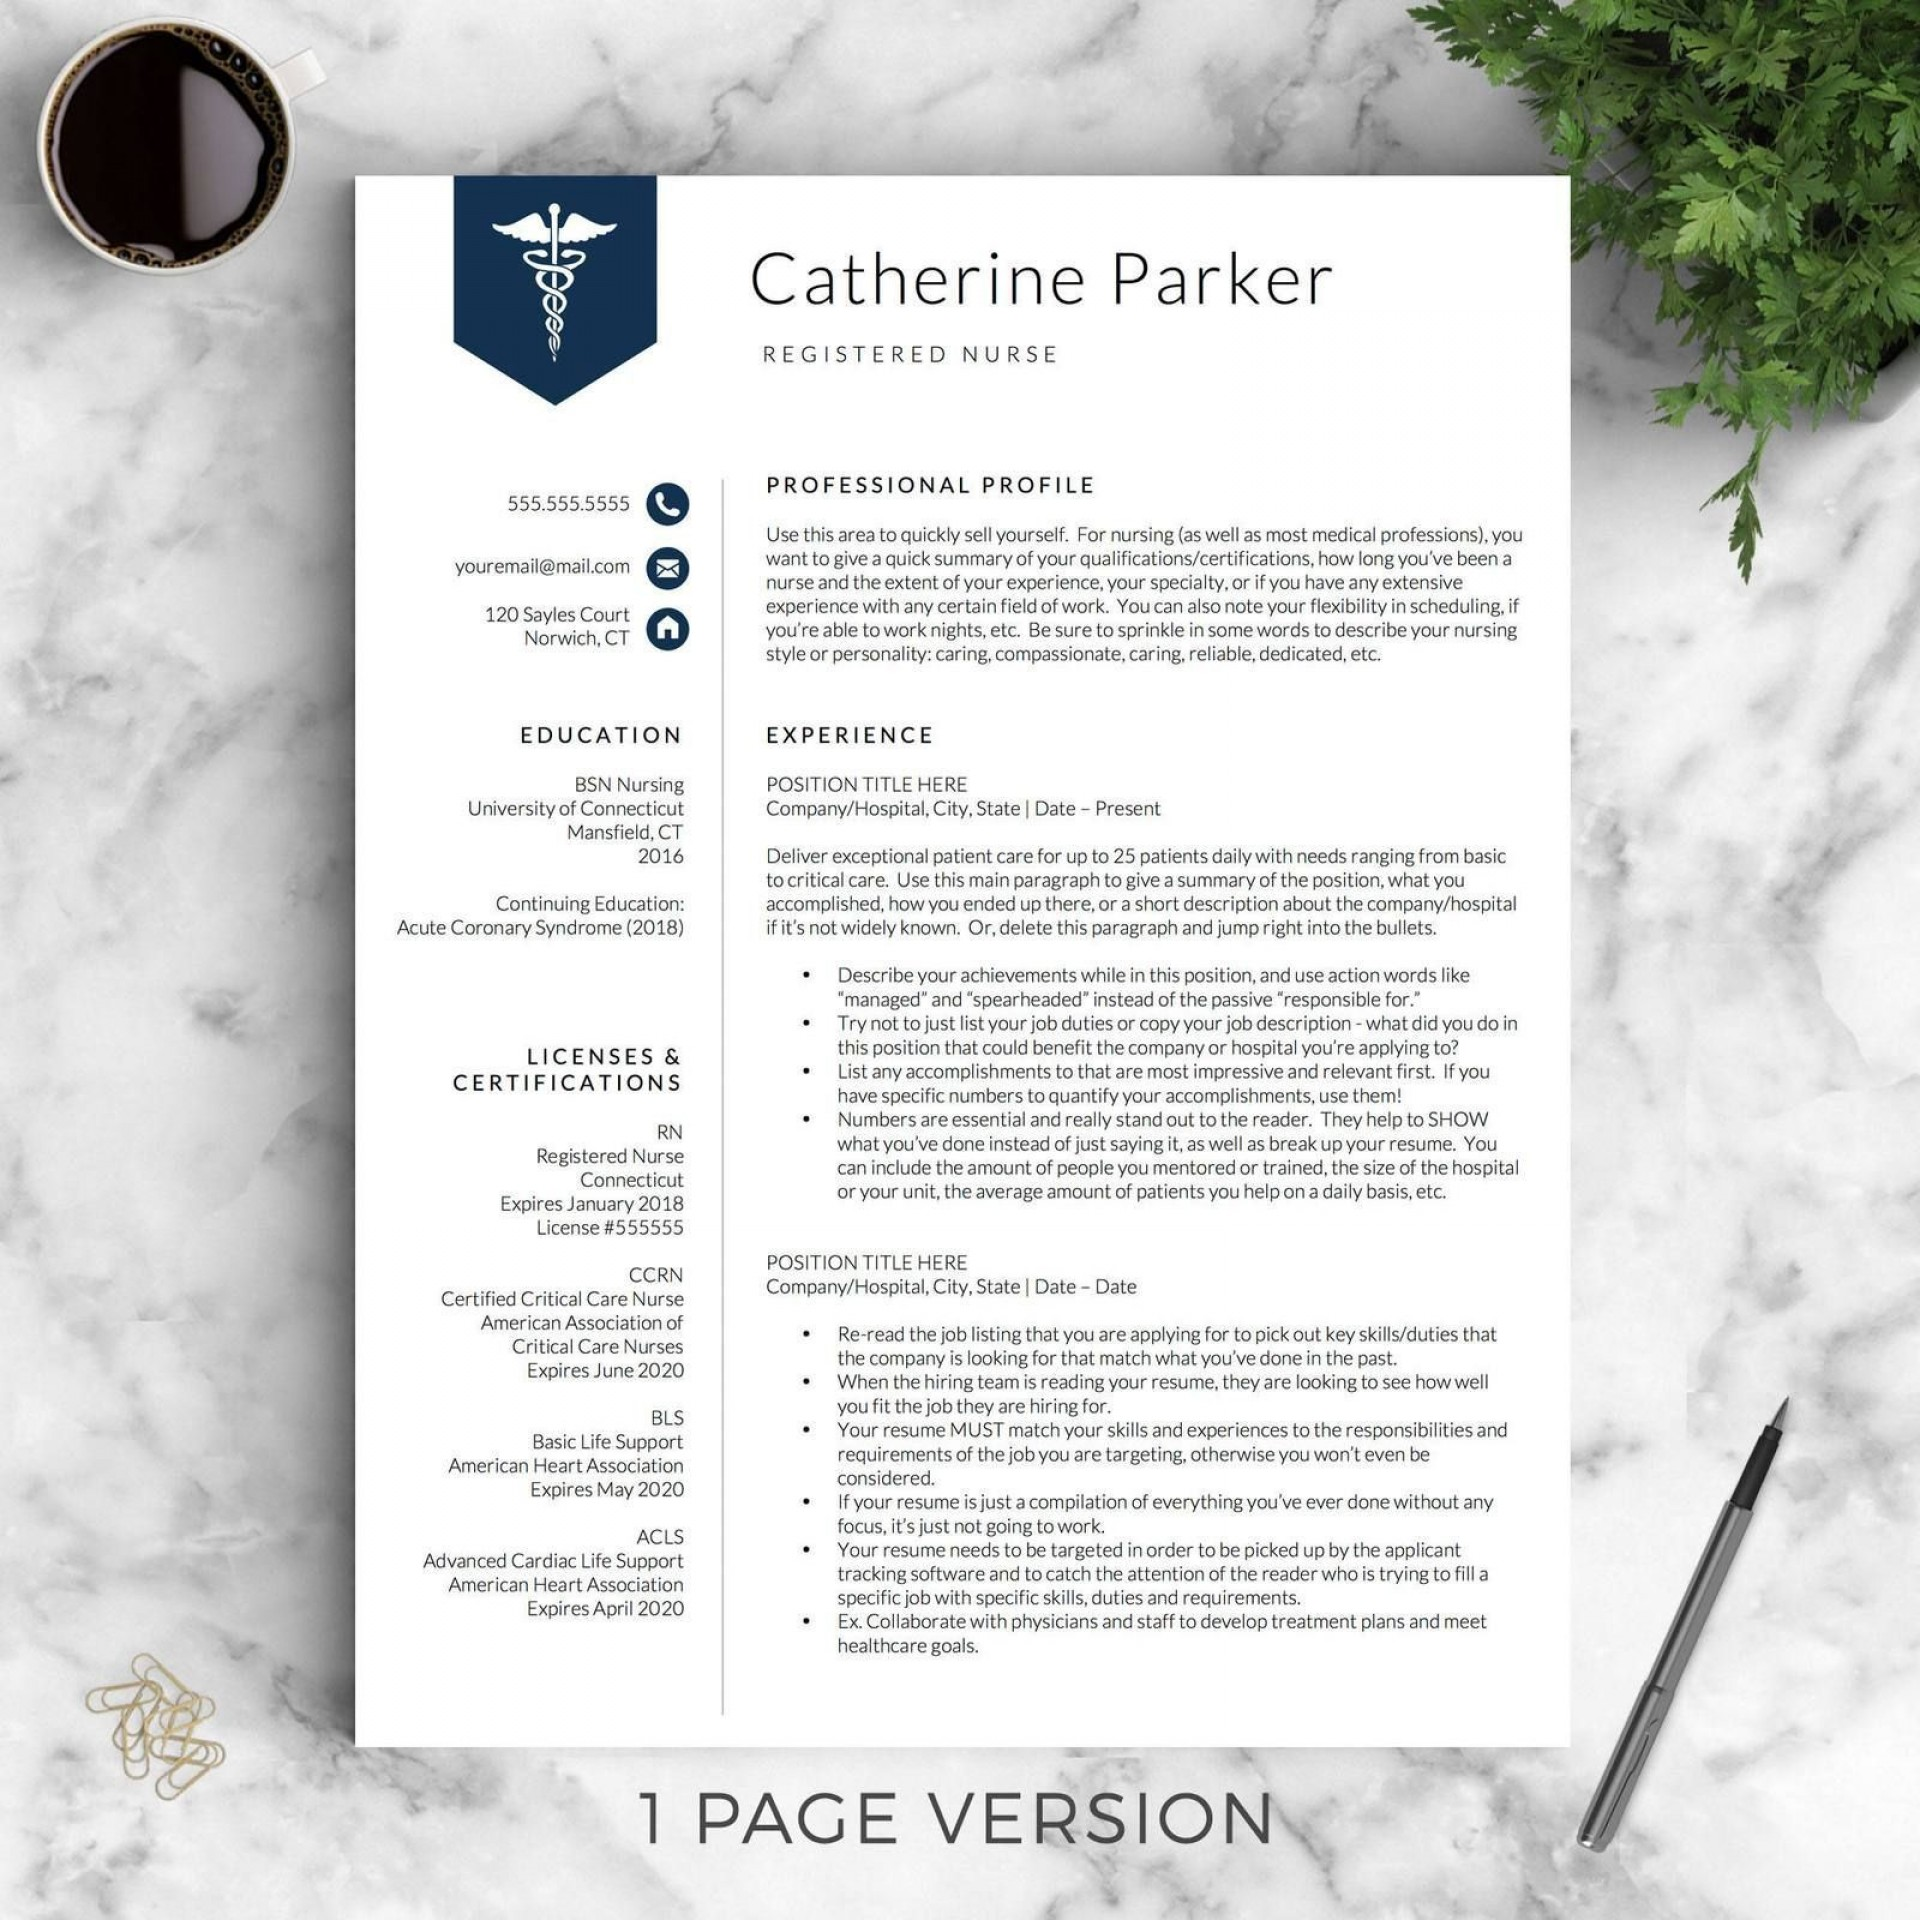 000 Simple Nurse Resume Template Free High Resolution  Graduate Rn1920